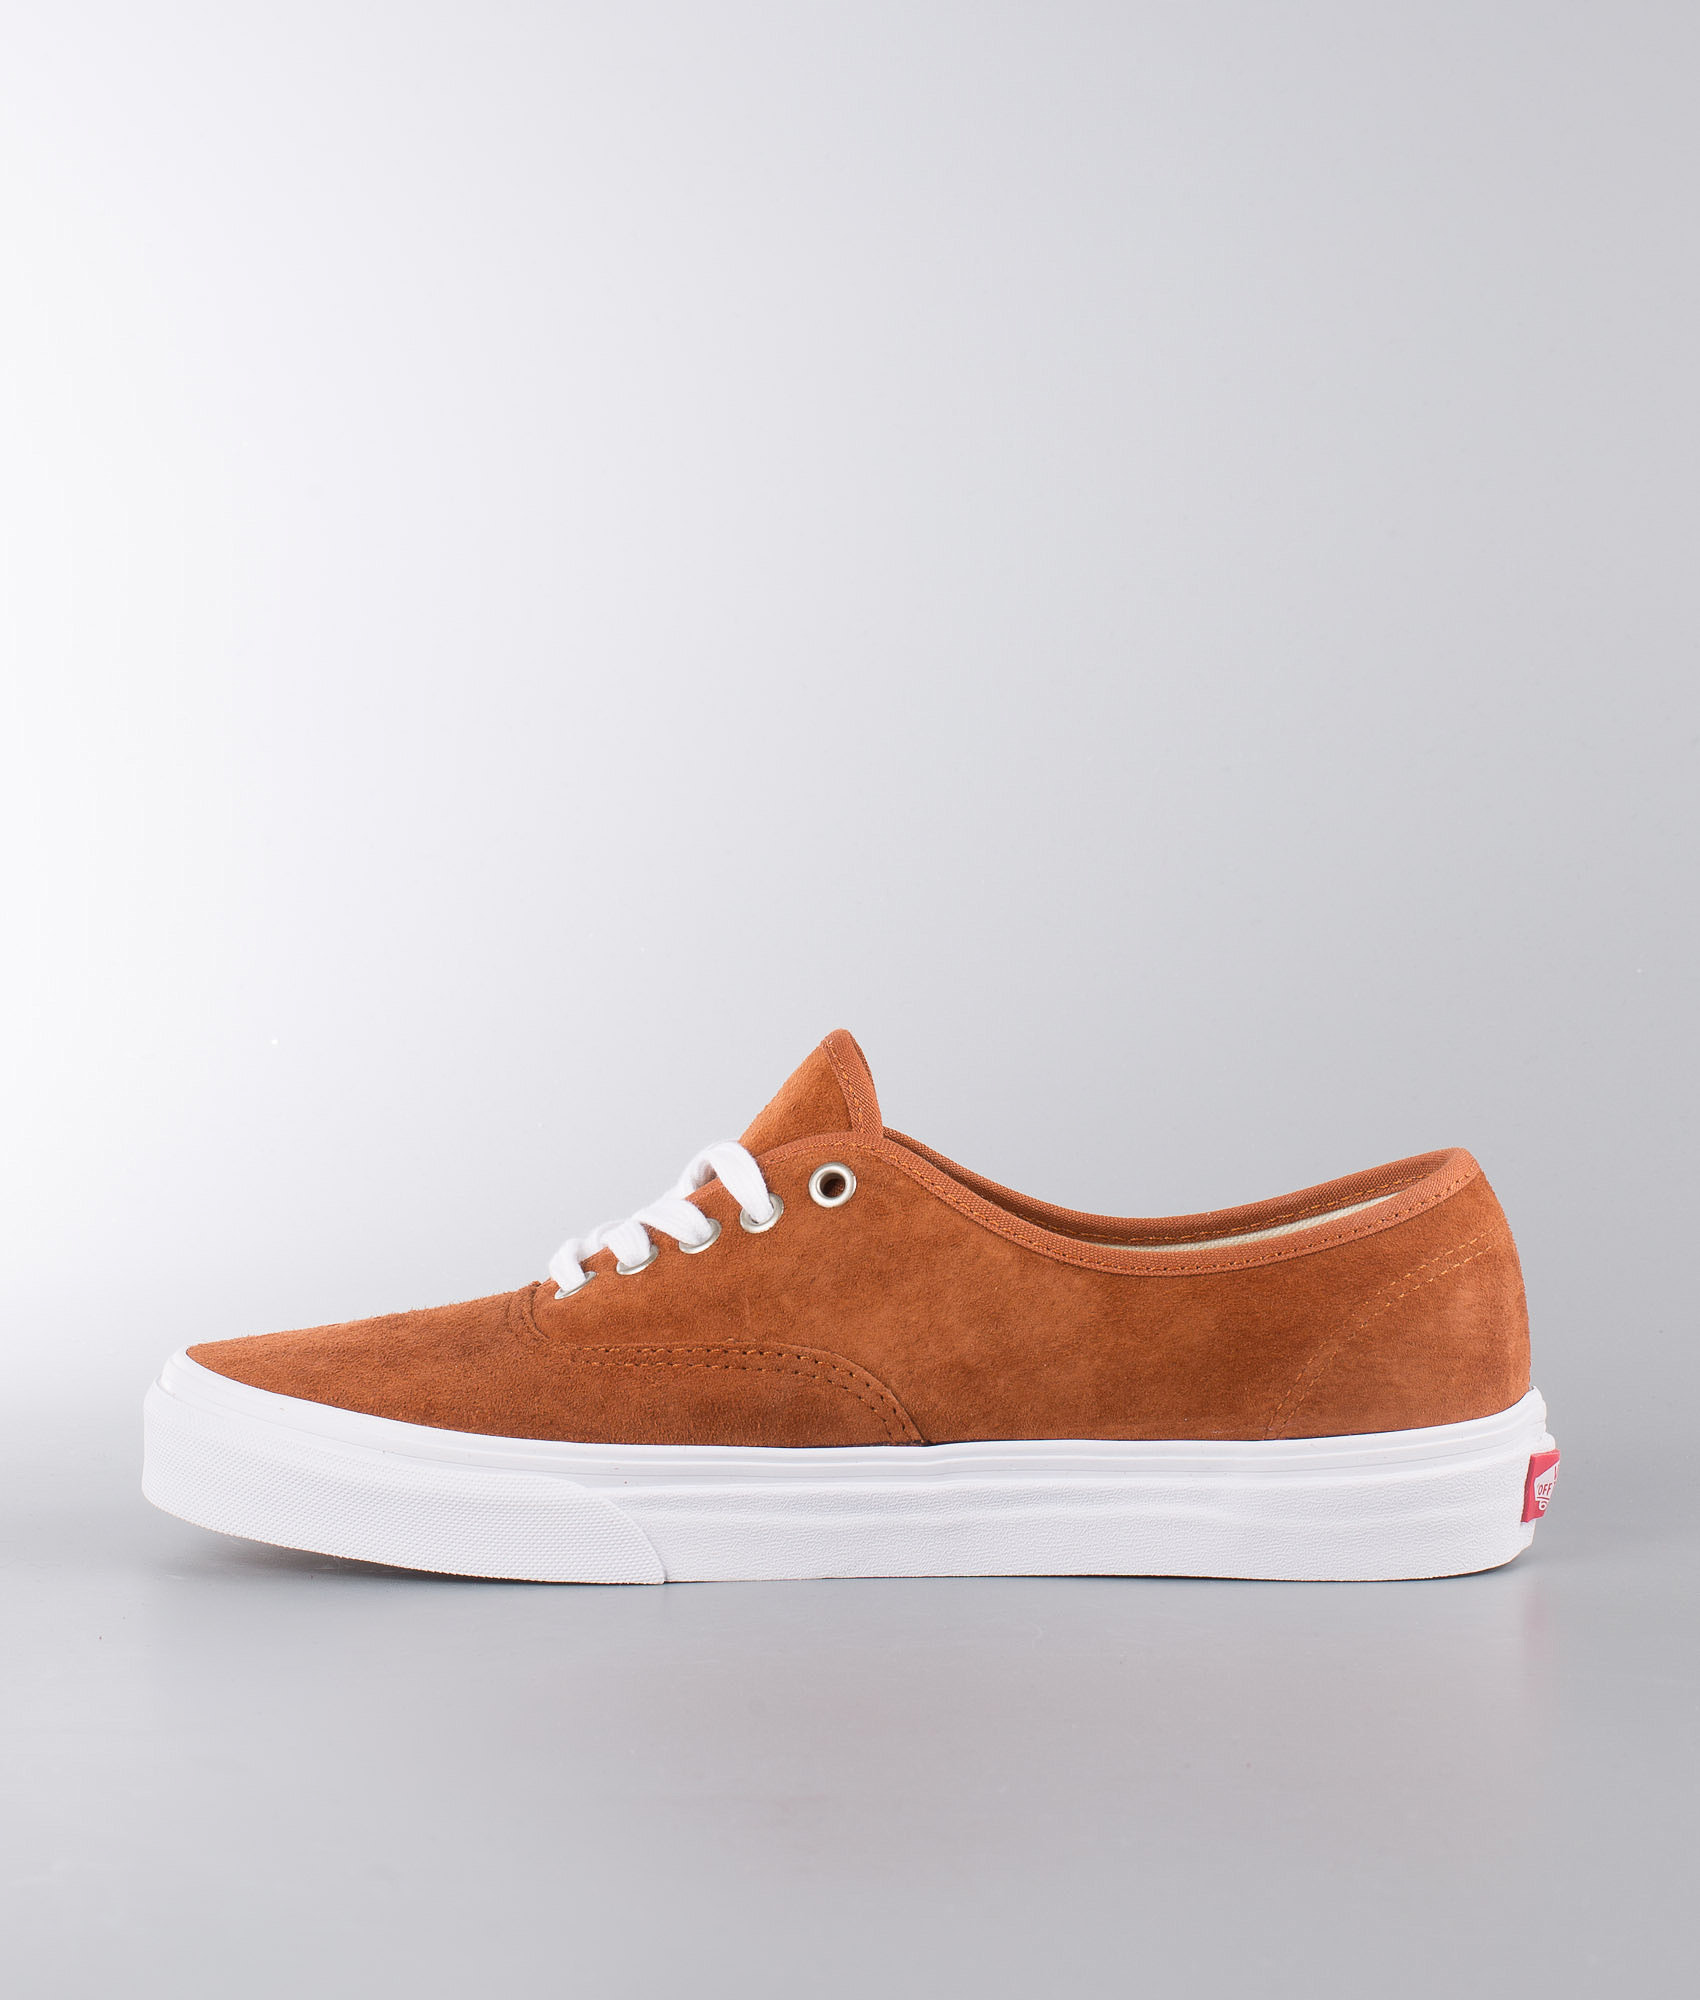 Vans Authentic Shoes (Pig Suede) Leather Brown True White ... fdeb087bf